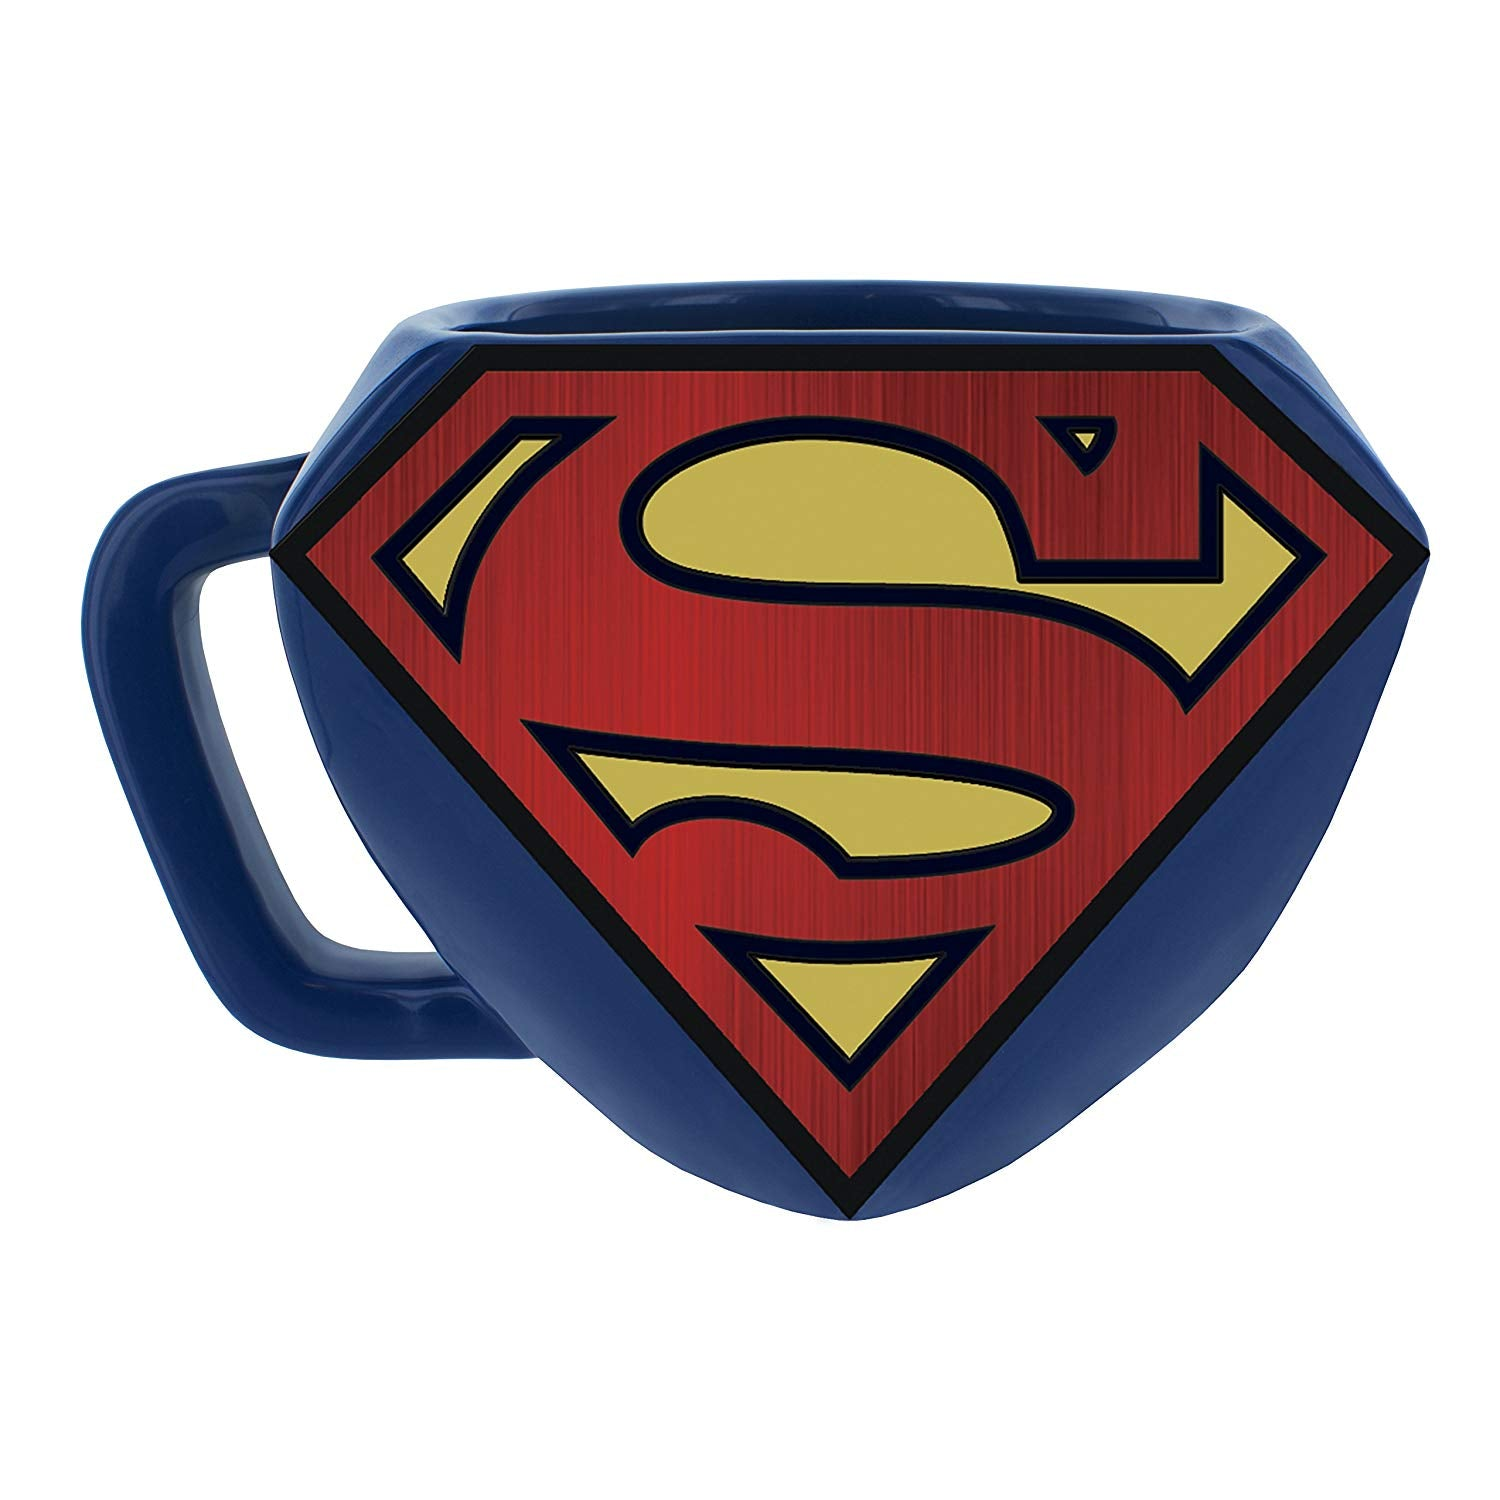 Tazza Sagomata - Superman Logo